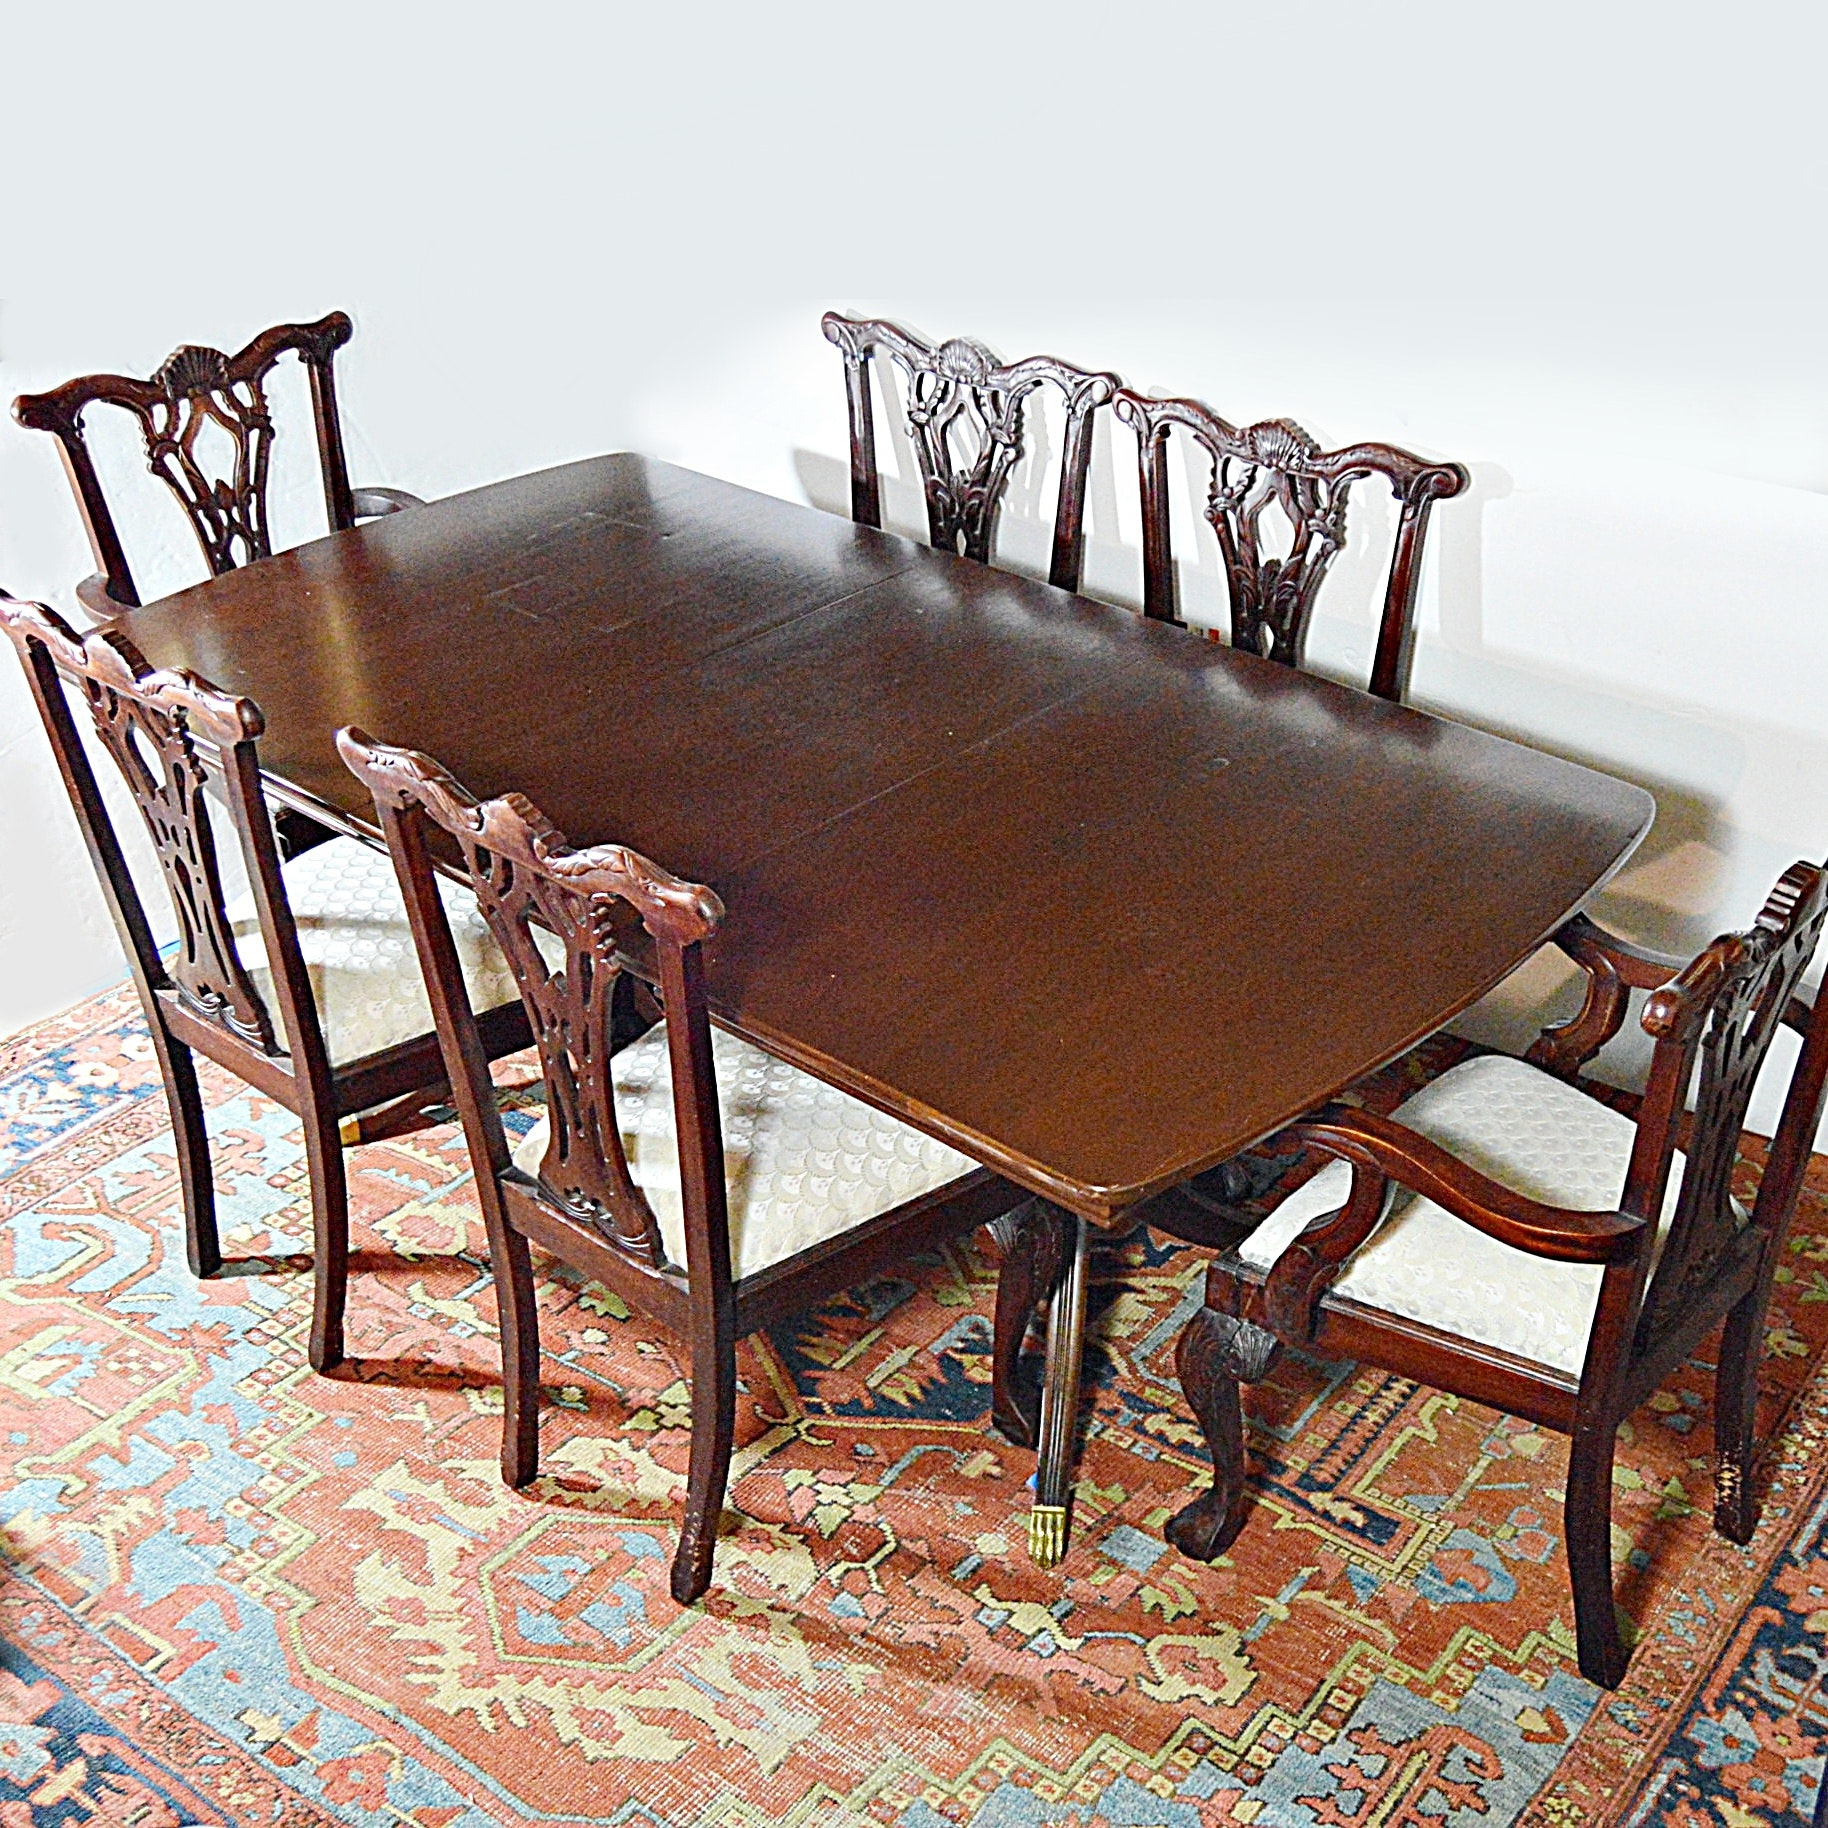 Duncan Phyfe Mahogany Dining Table and Six Chippendale Style Mahogany Chairs